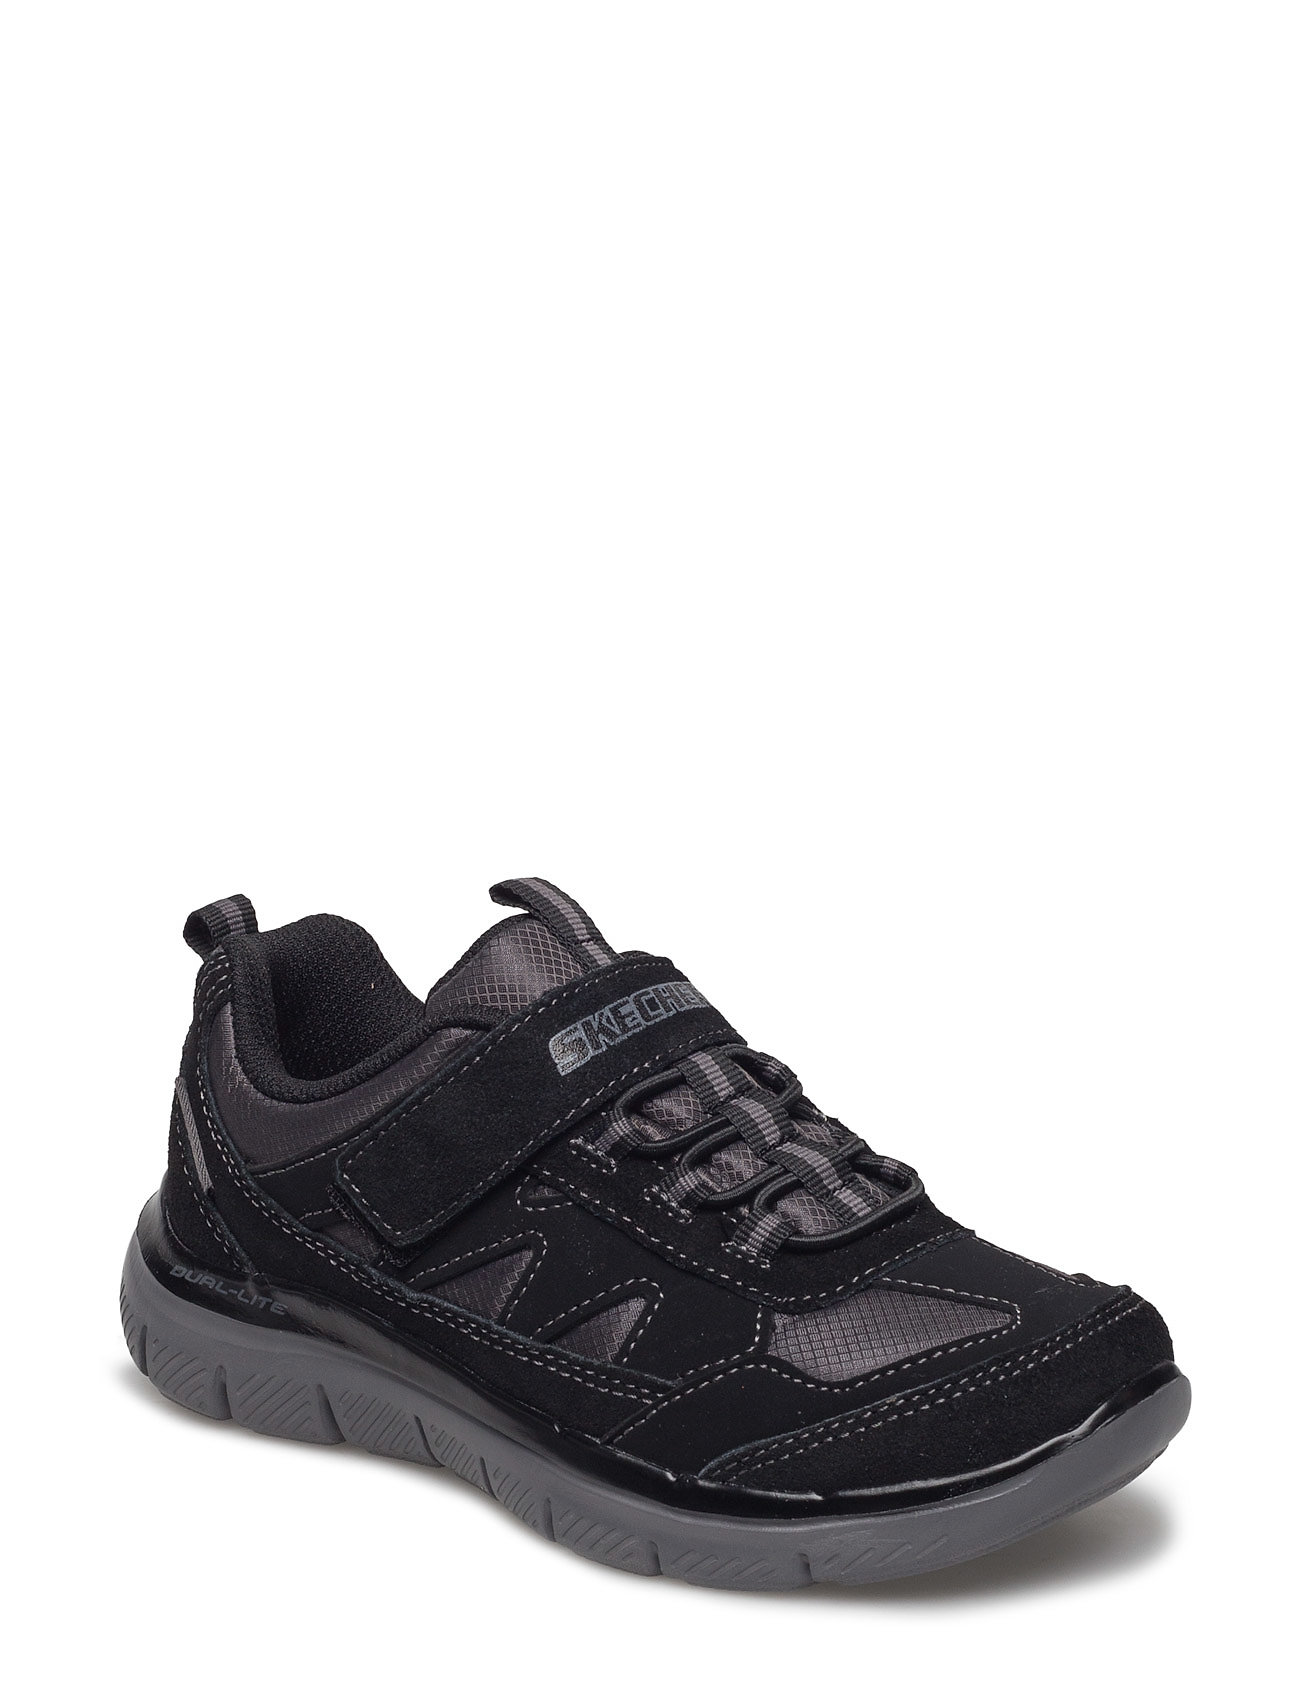 Boys Flex Advantage Skechers Sko & Sneakers til Børn i